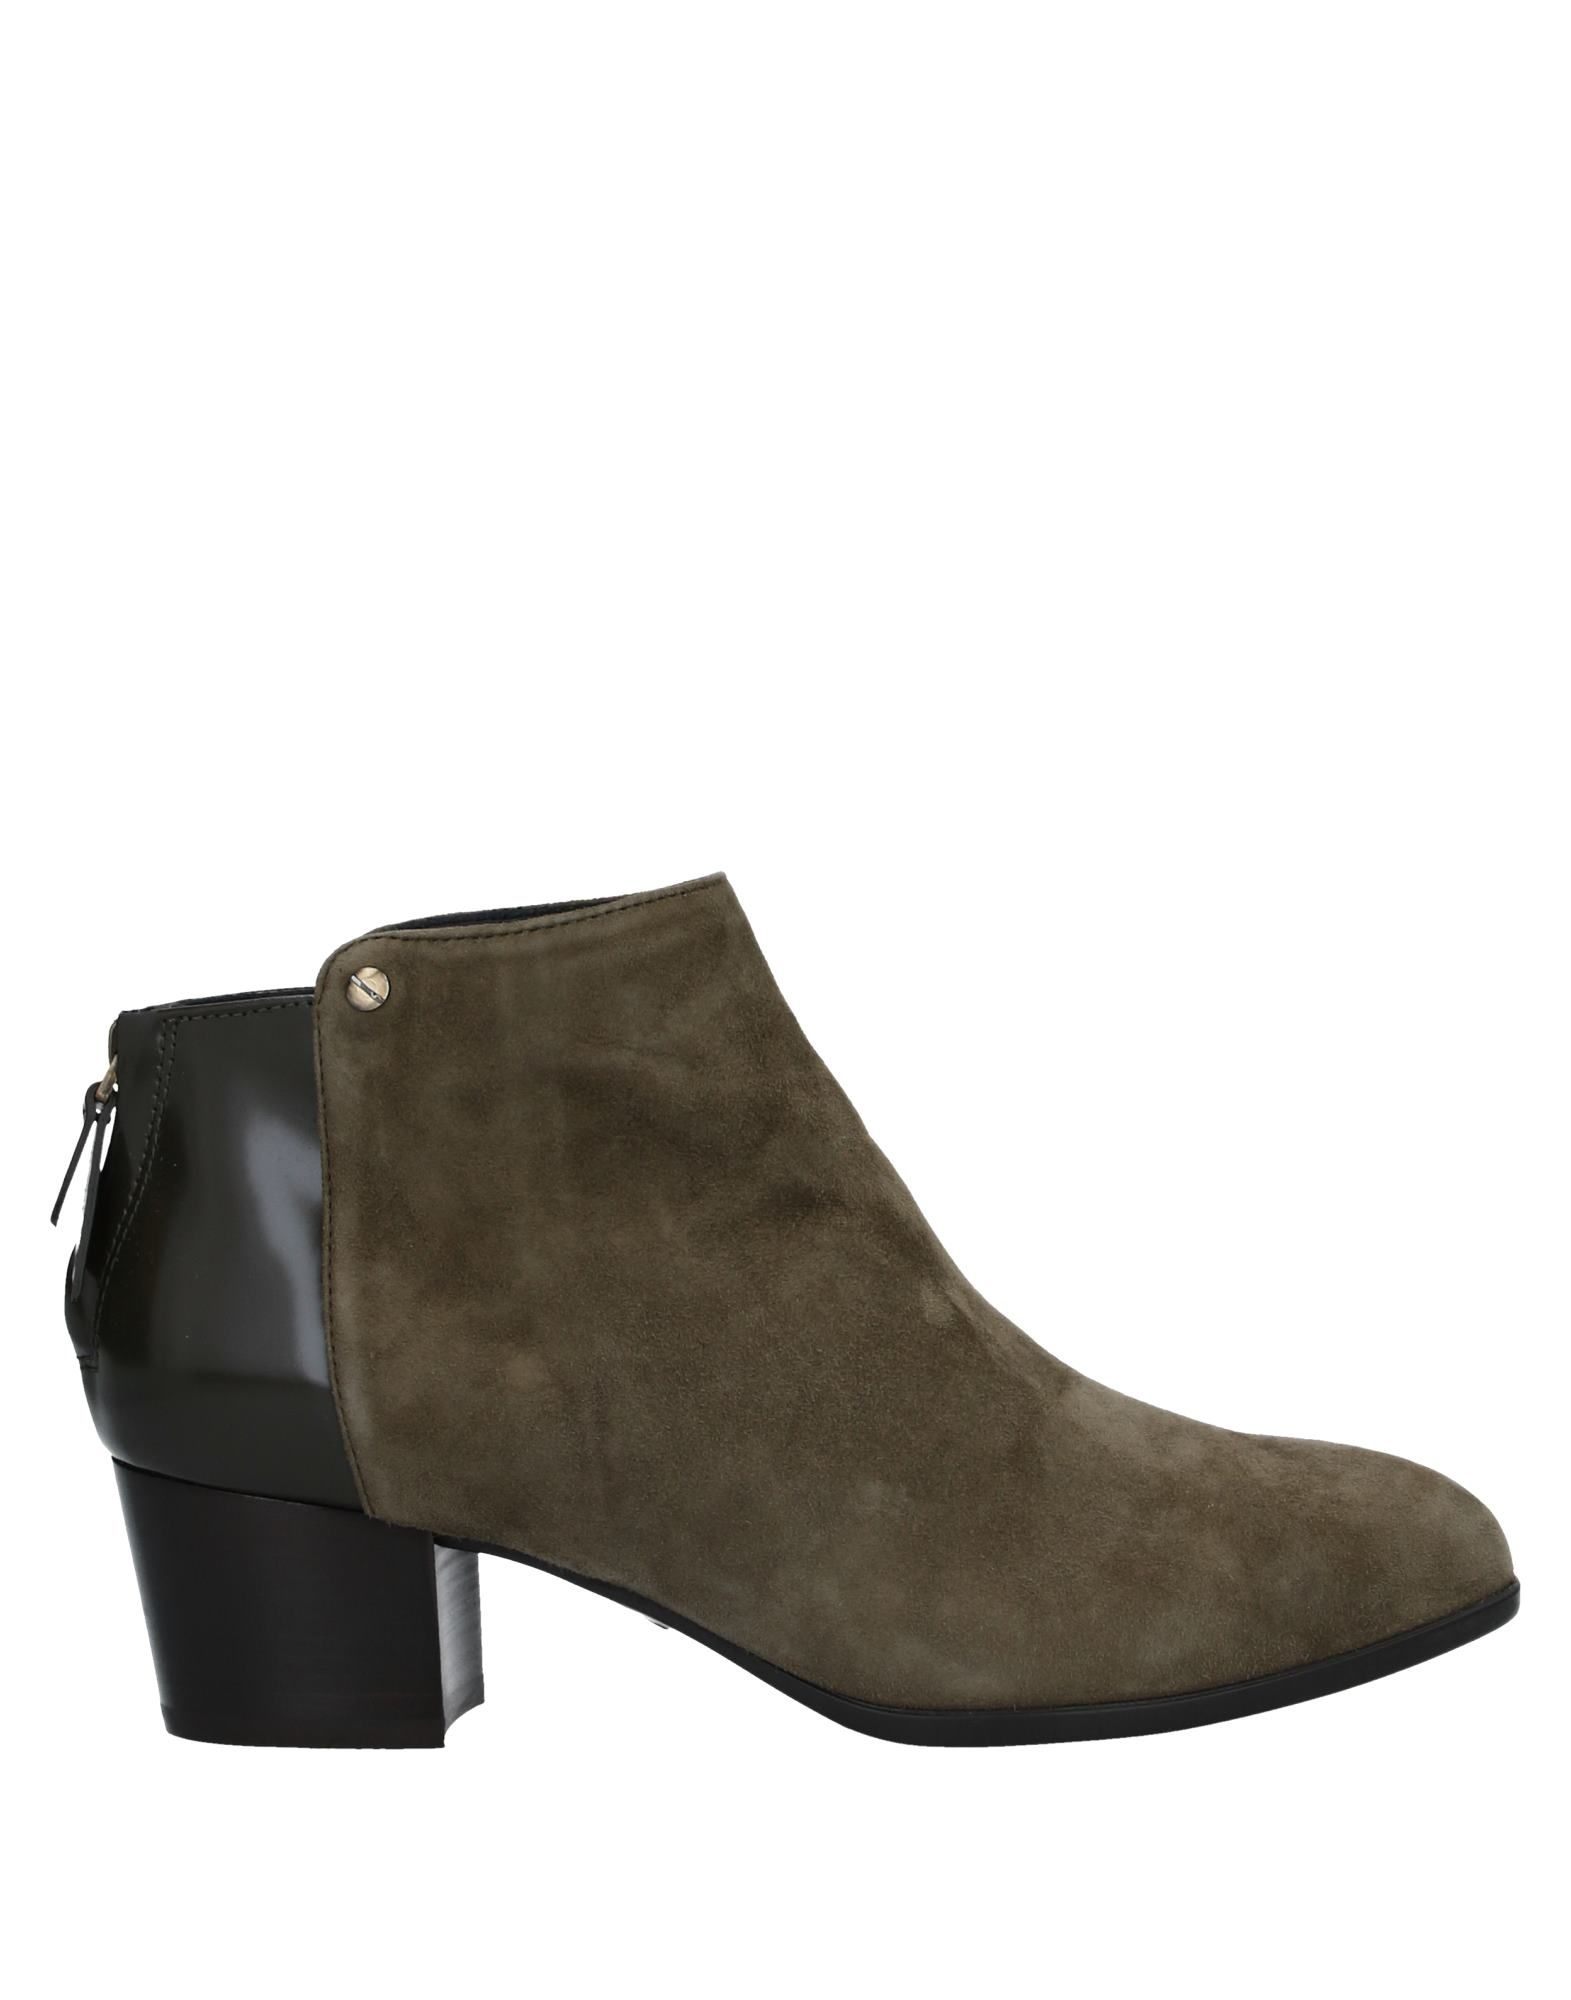 HOGAN Booties. leather, suede effect, metal applications, polished leather, solid color, zipper closure, round toeline, square heel, leather lining, rubber sole, contains non-textile parts of animal origin. Soft Leather